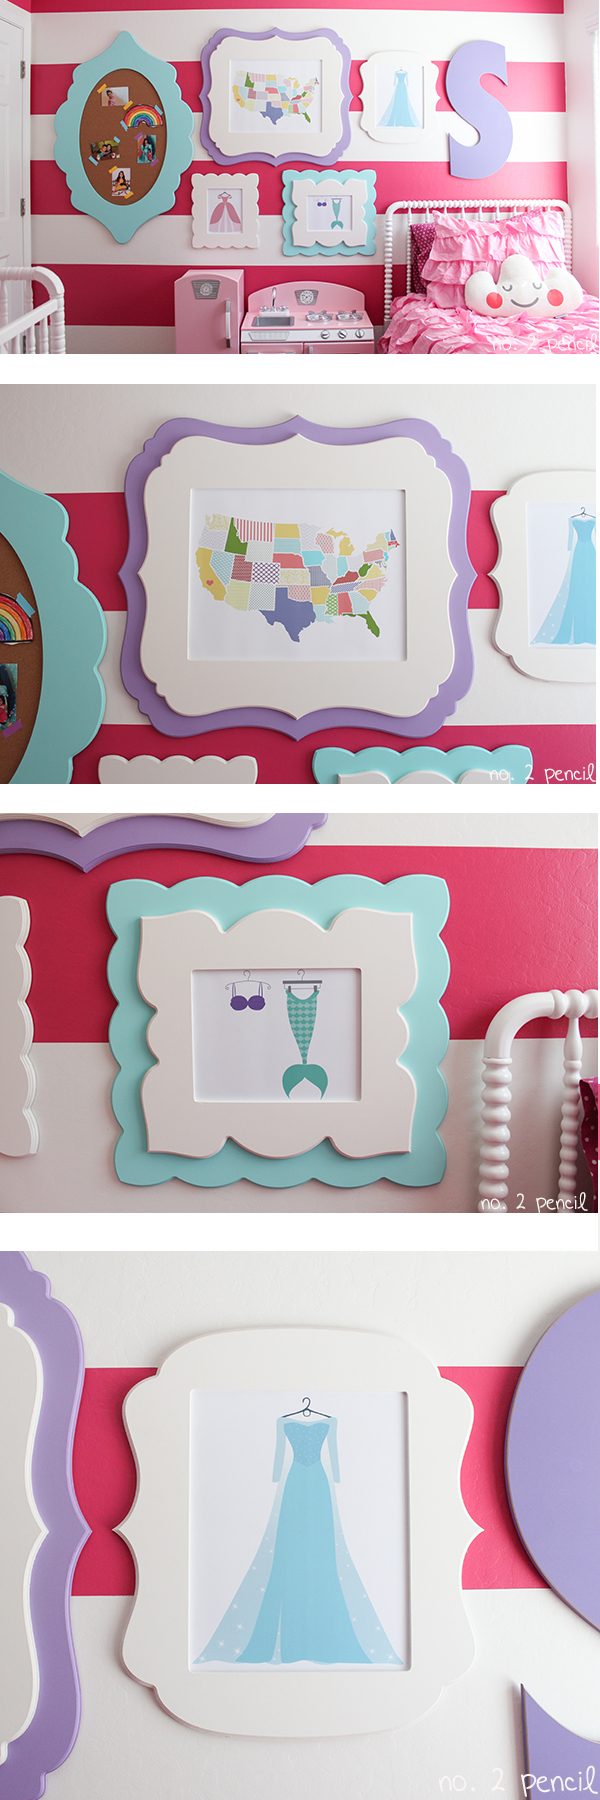 DIY Gallery Wall for Little Girl's Room